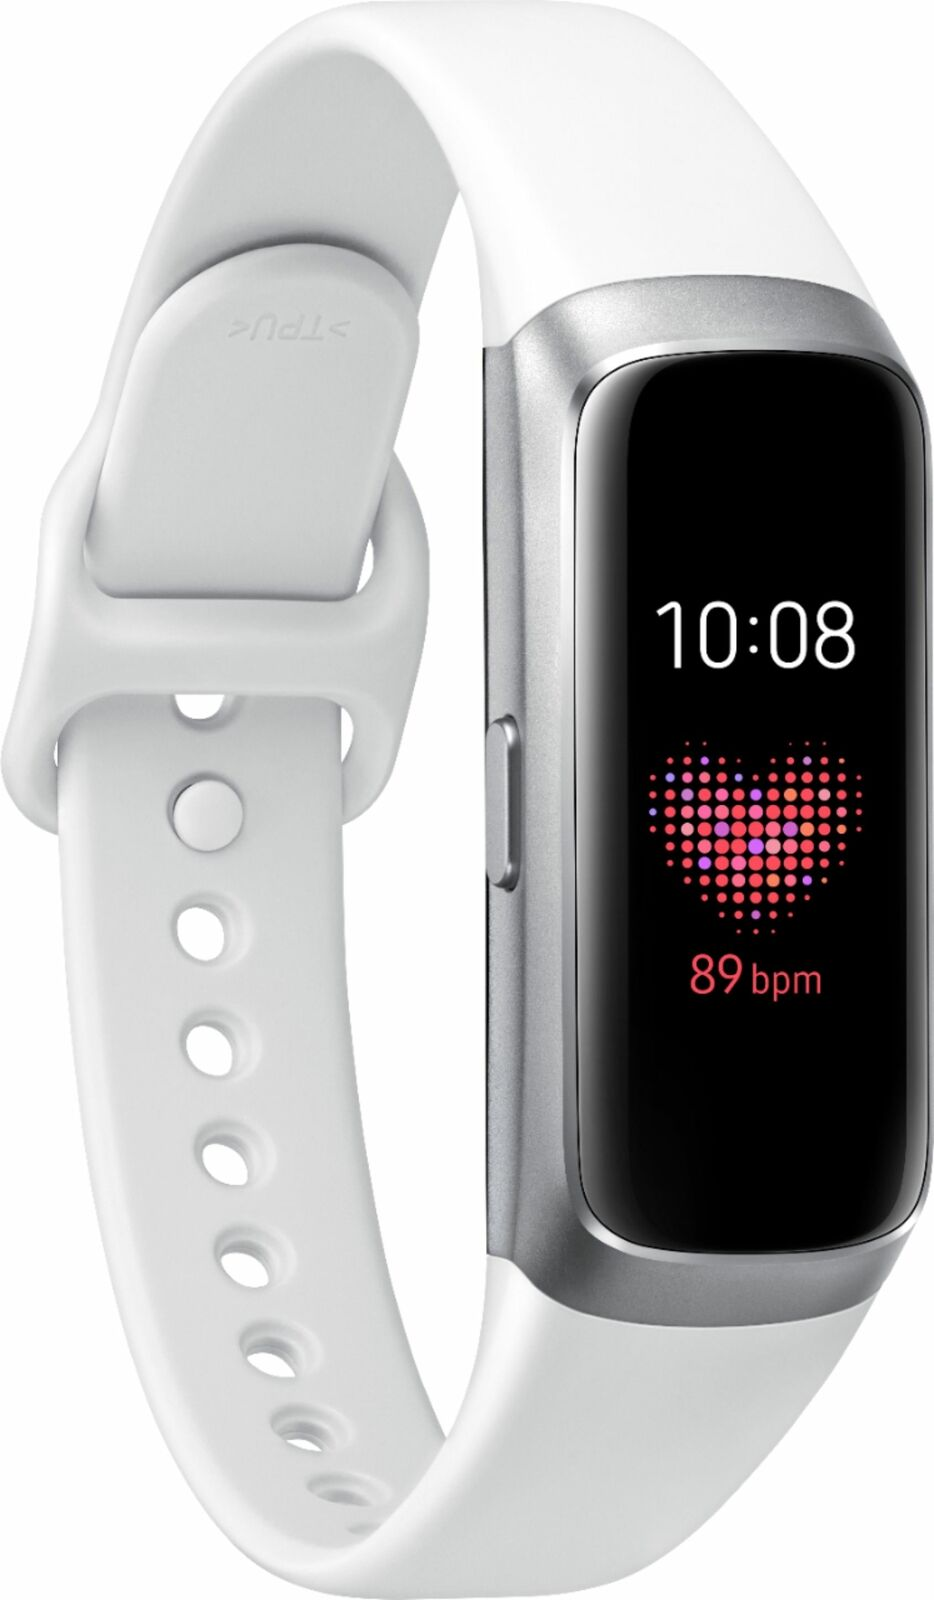 Brand New Samsung Galaxy Fit Activity Tracker + Heart Rate White - FREE SHIPPING activity brand Featured fit galaxy heart new rate samsung tracker white